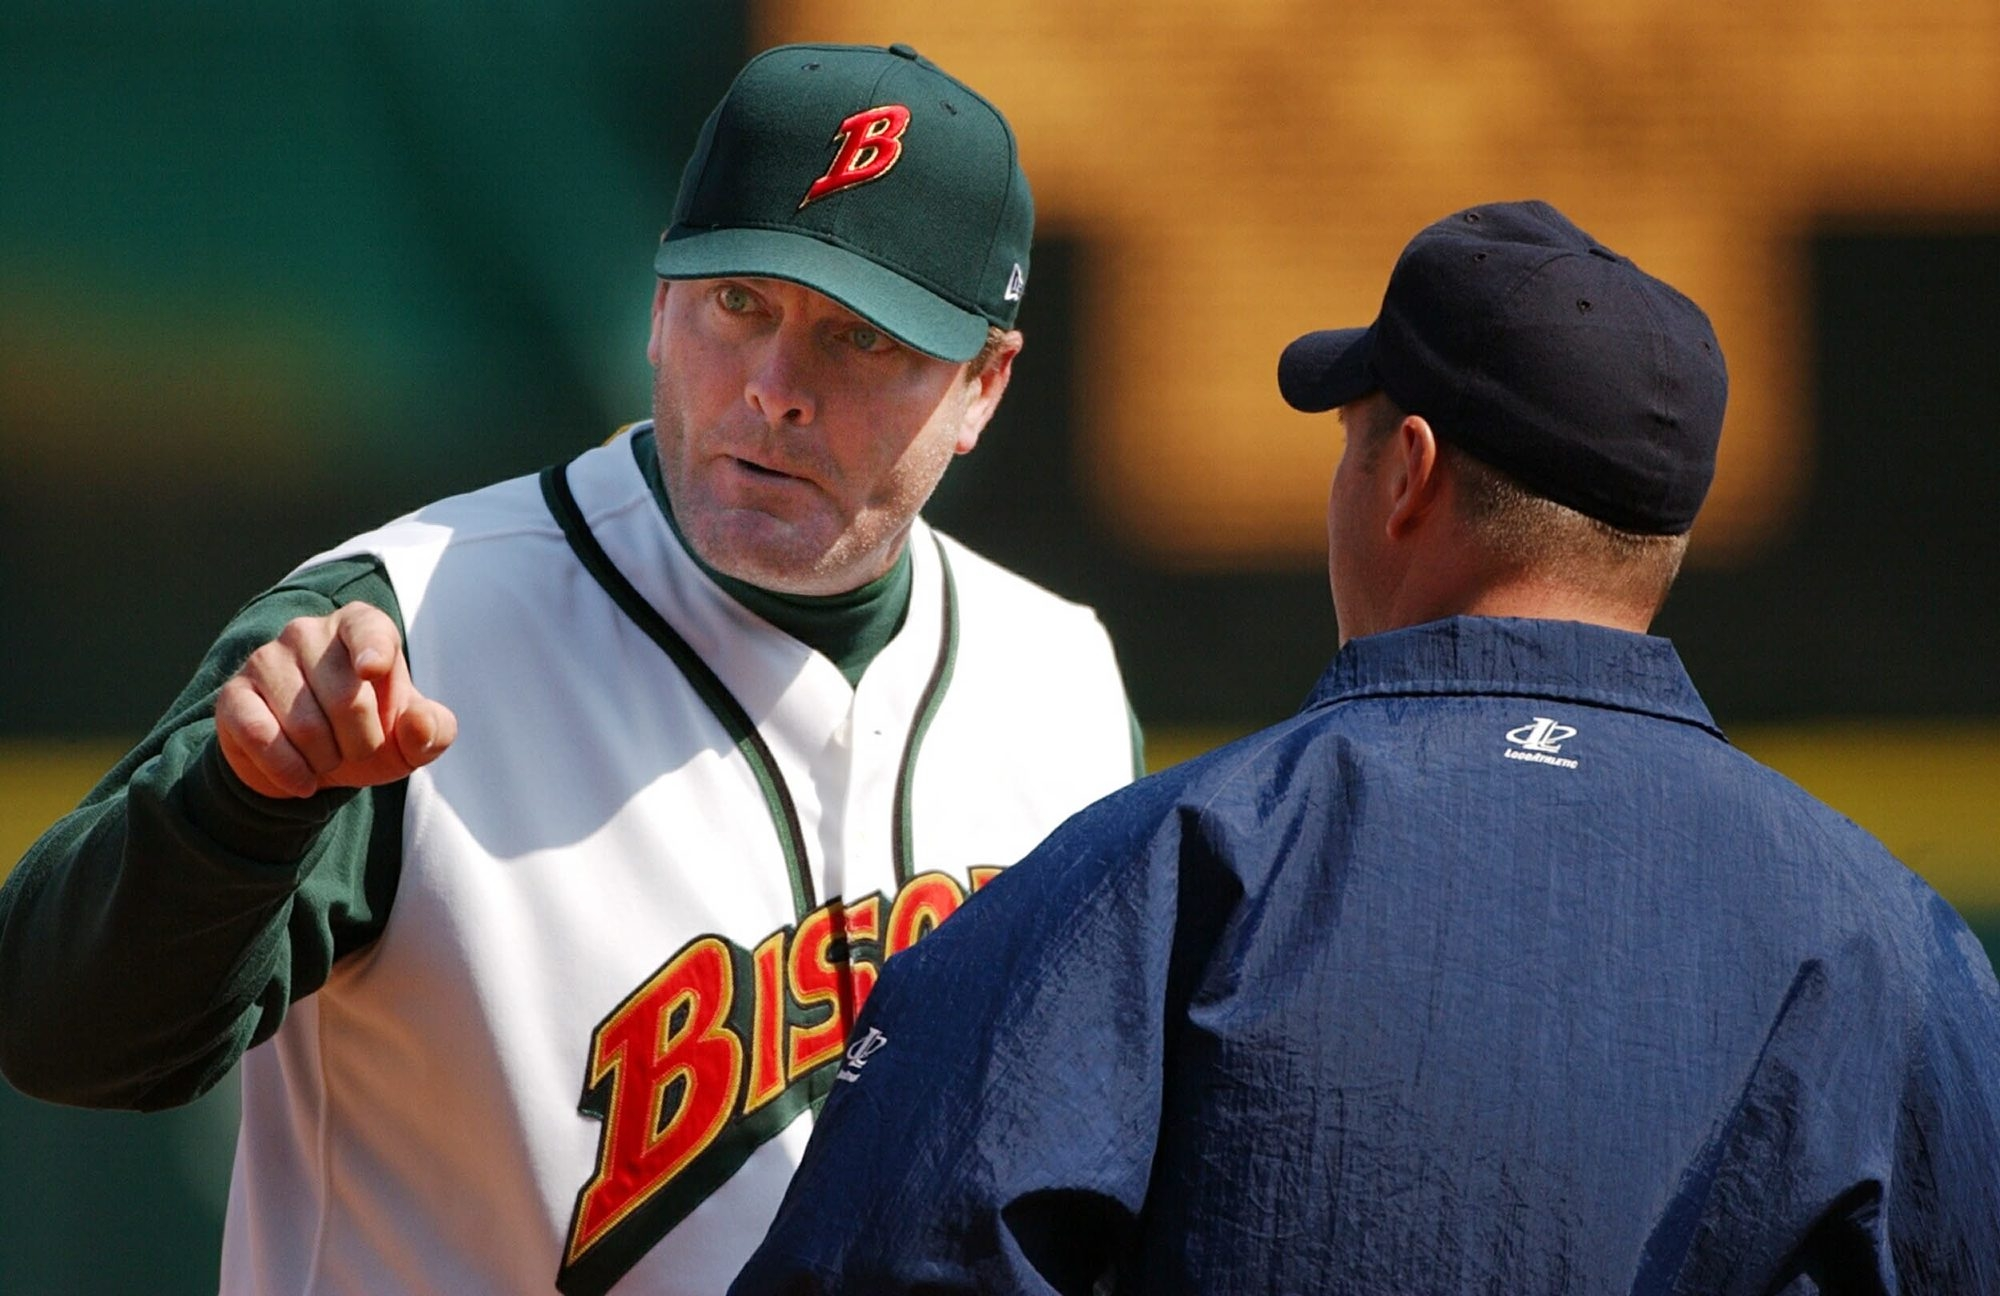 Former Bisons manager Eric Wedge led the Herd to a 178-108 record in 2001-02, a .622 winning percentage that's the best in the modern era.